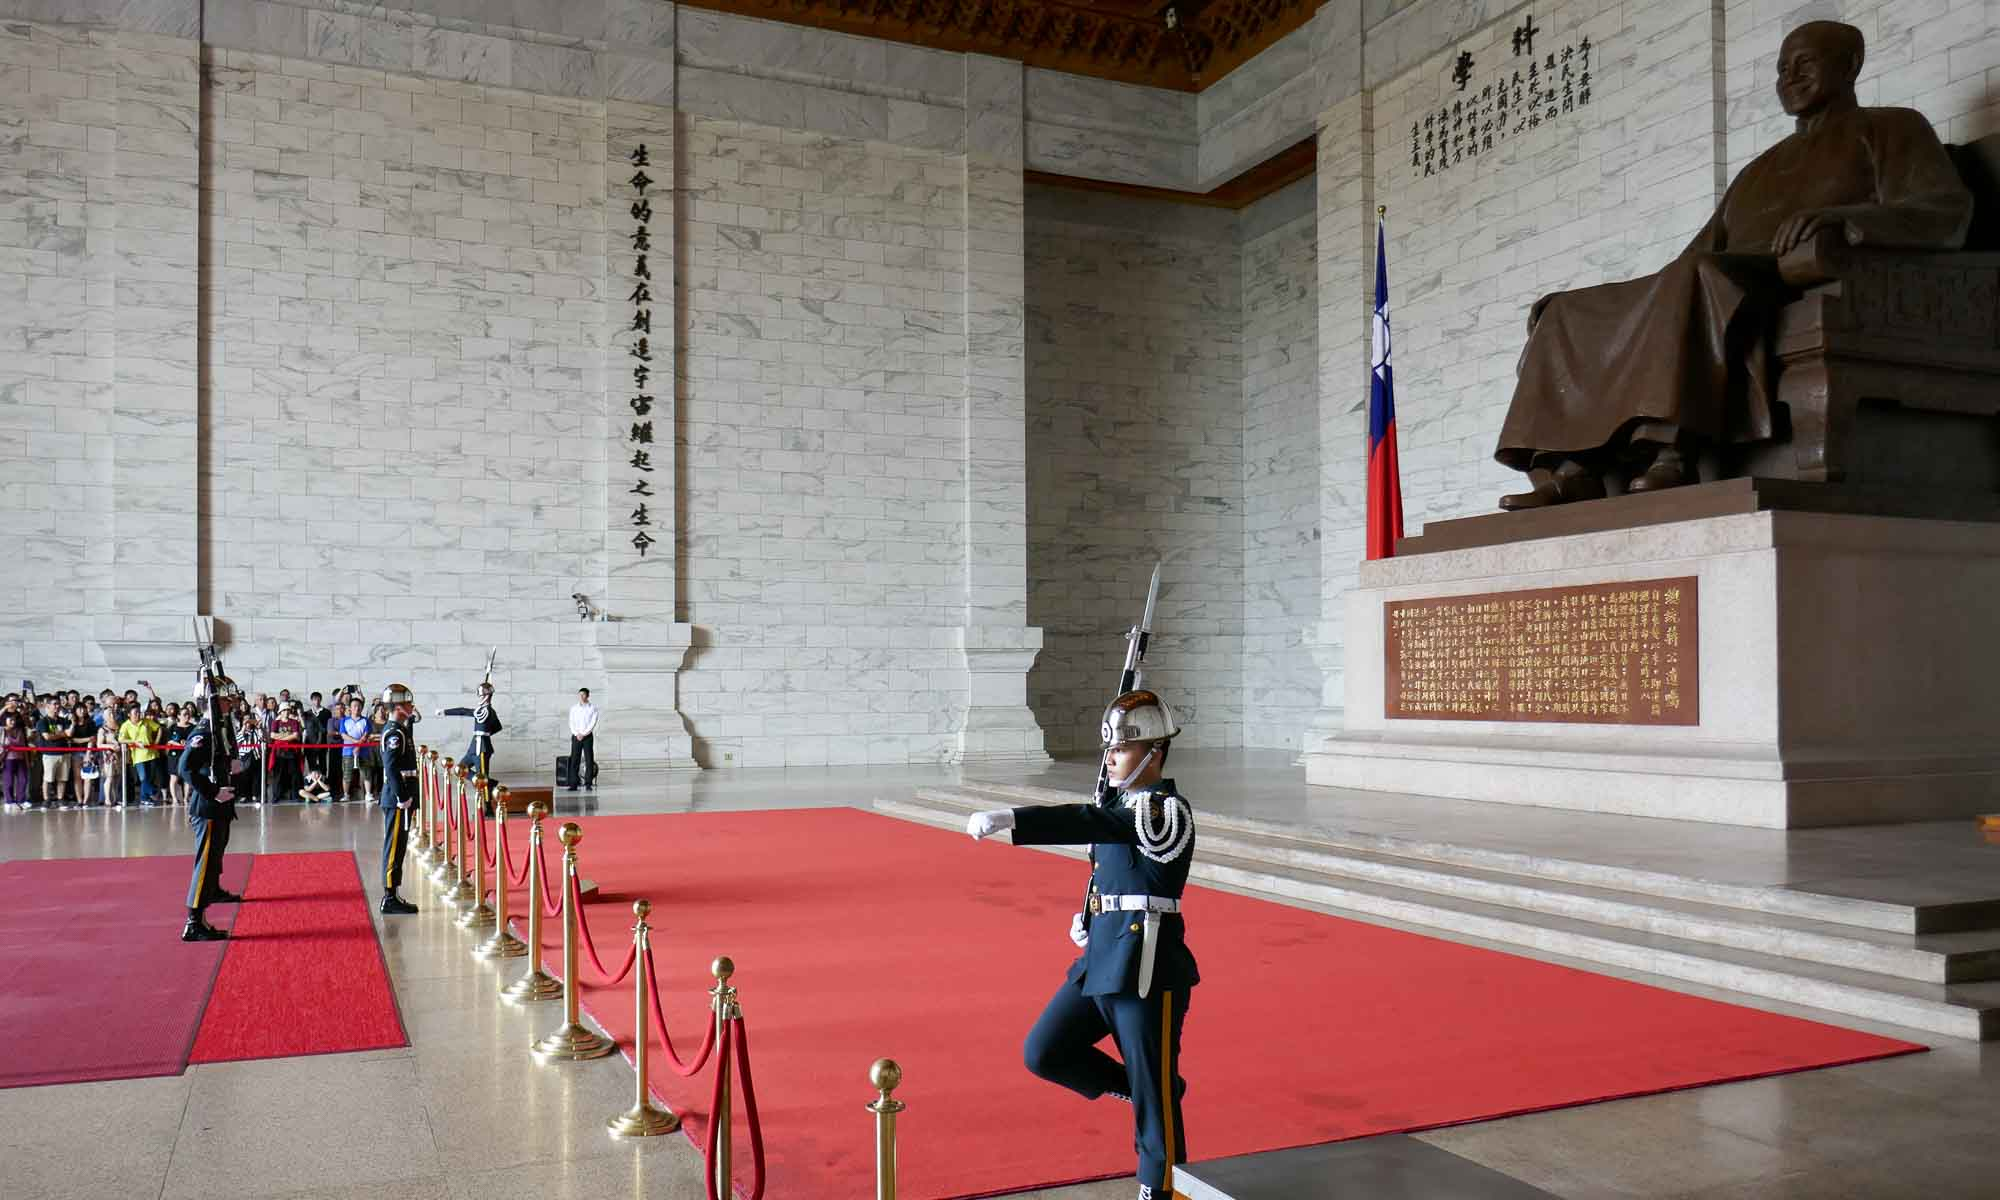 The 'changing of the guard' ceremony